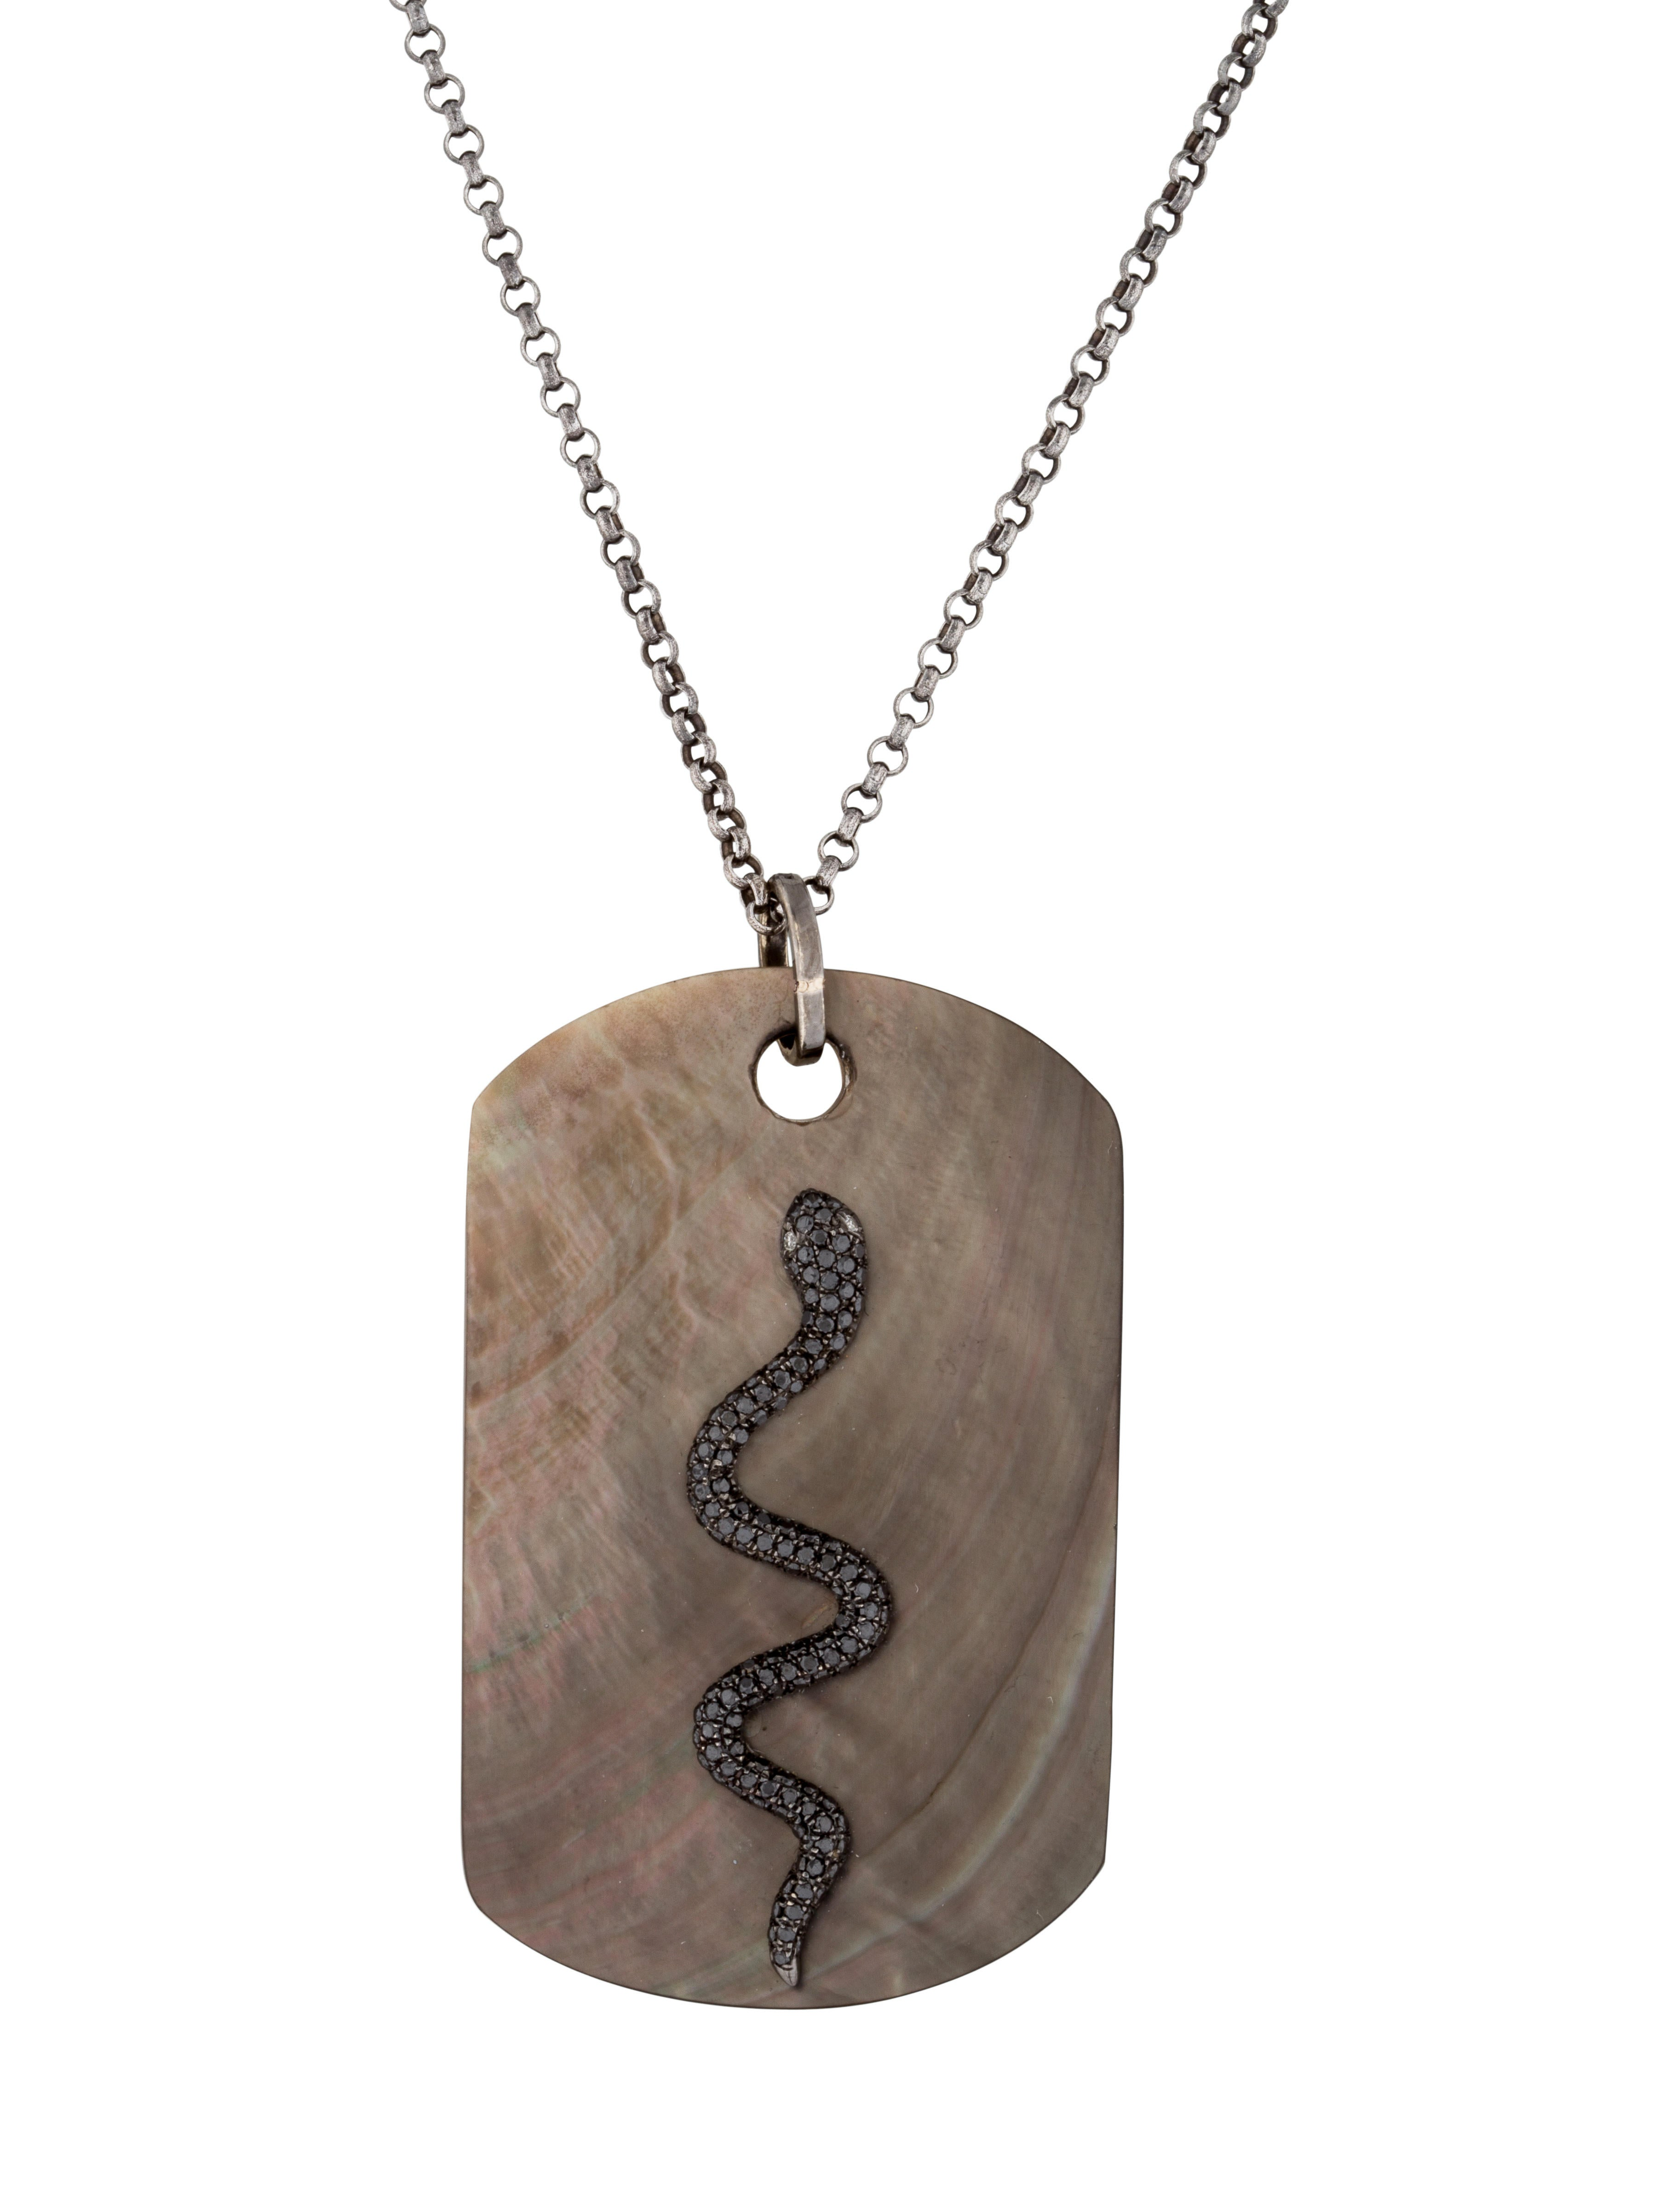 18k Snake Dog Tag Necklace Necklaces Fjn26365 The